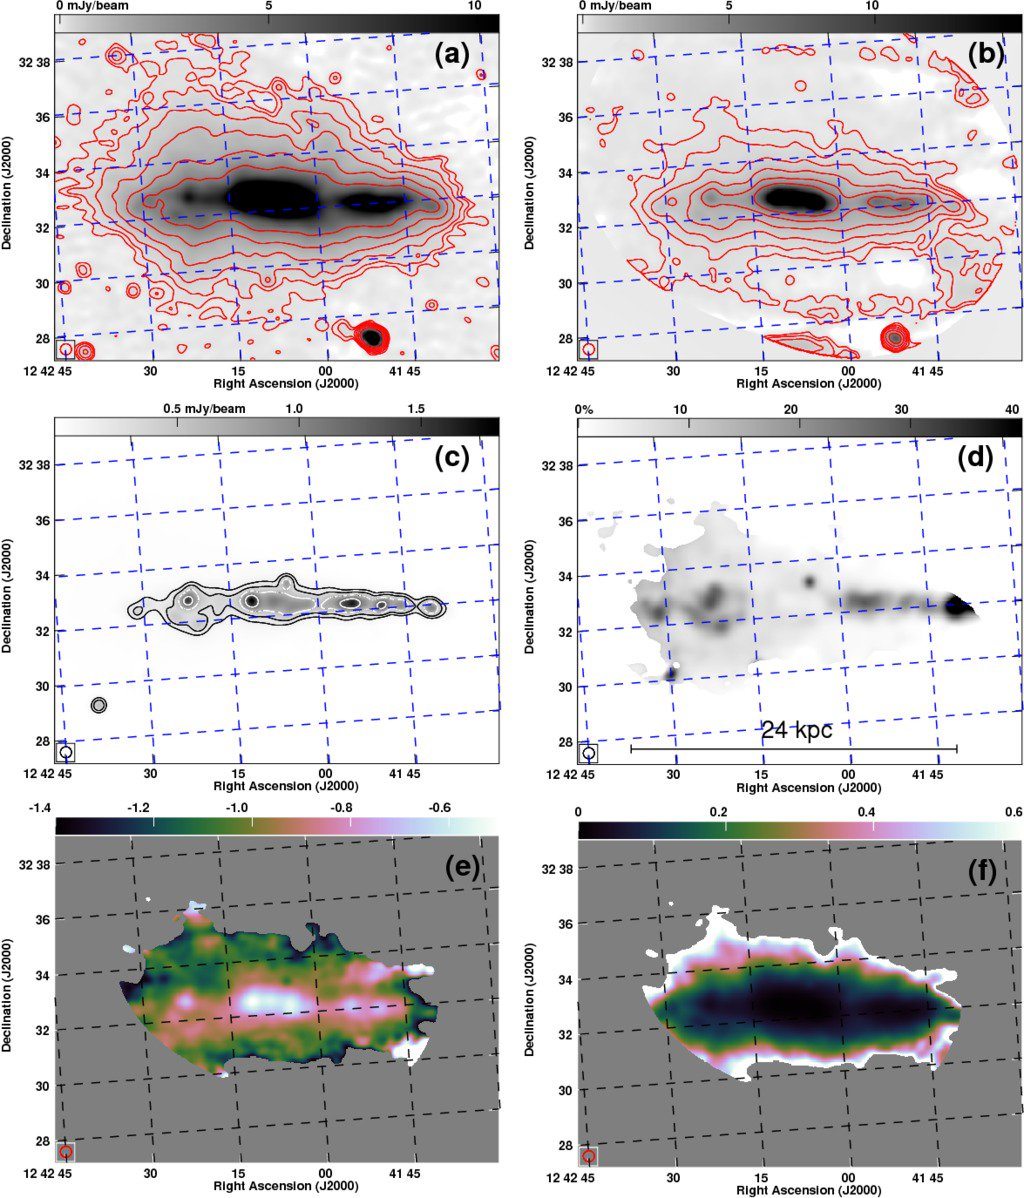 hight resolution of radio haloes in nearby galaxies modelled with 1d cosmic ray transport using spinnaker ga